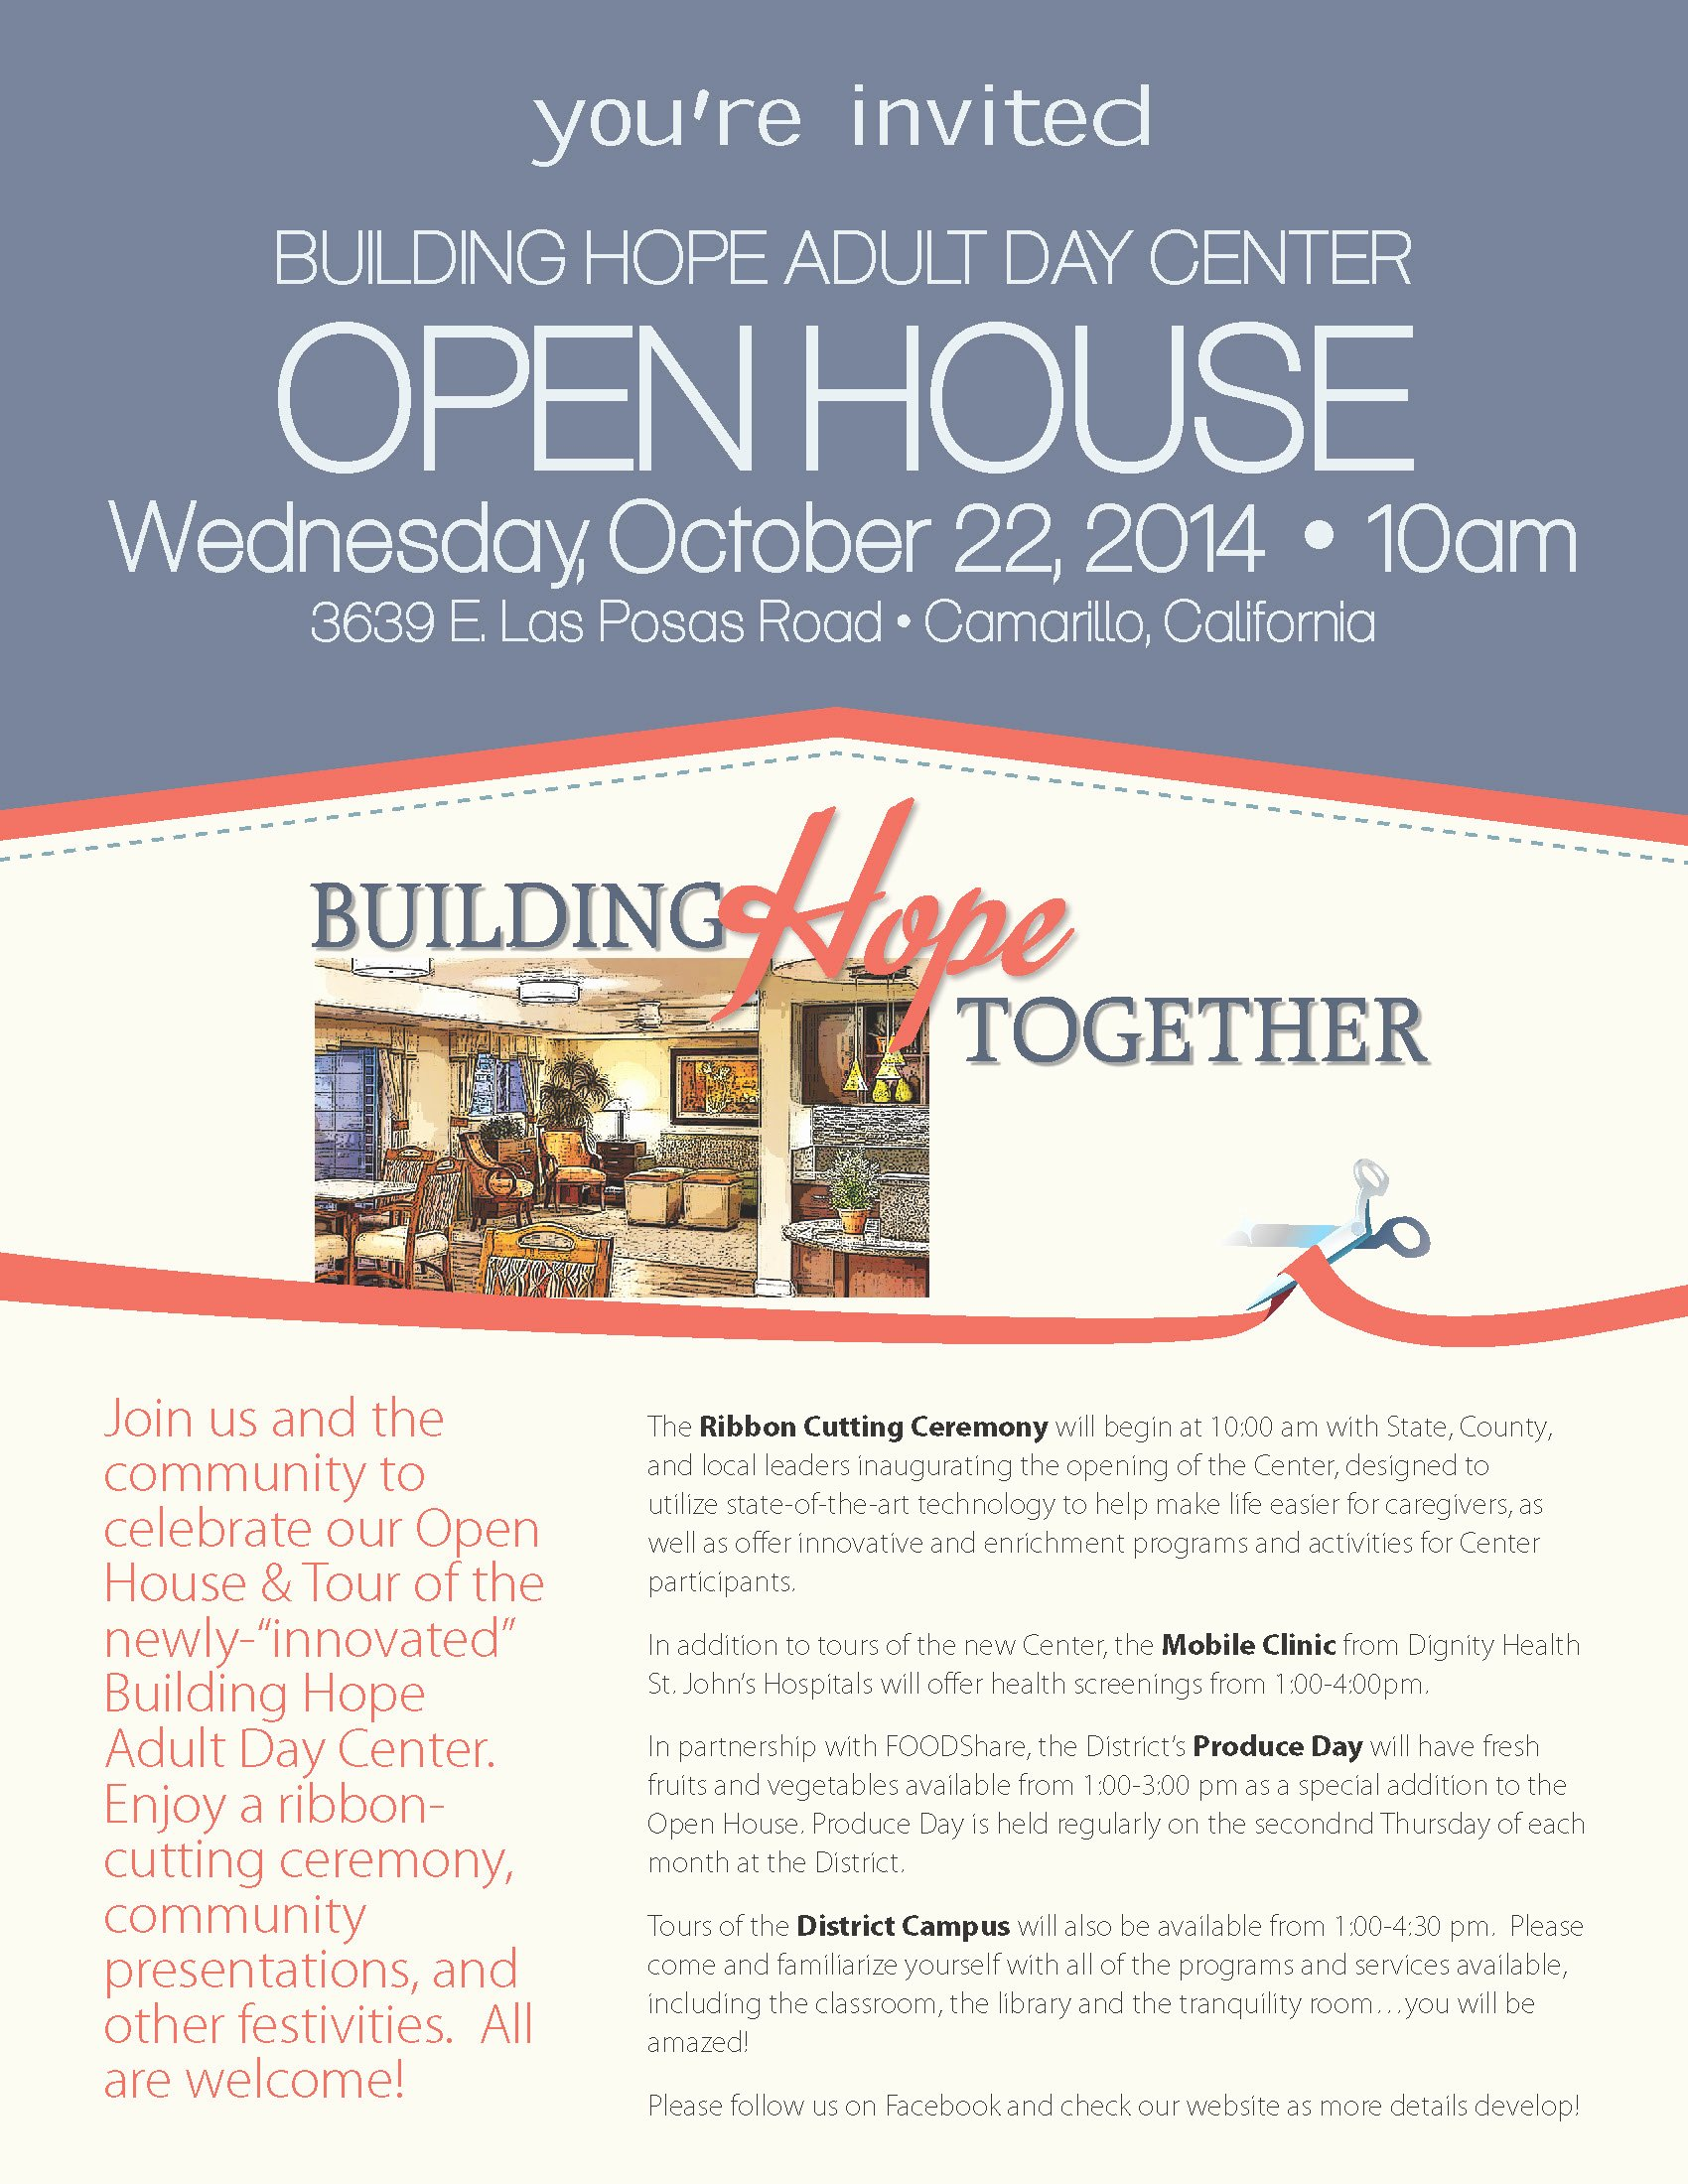 Building Hope Adult Day Center now Open